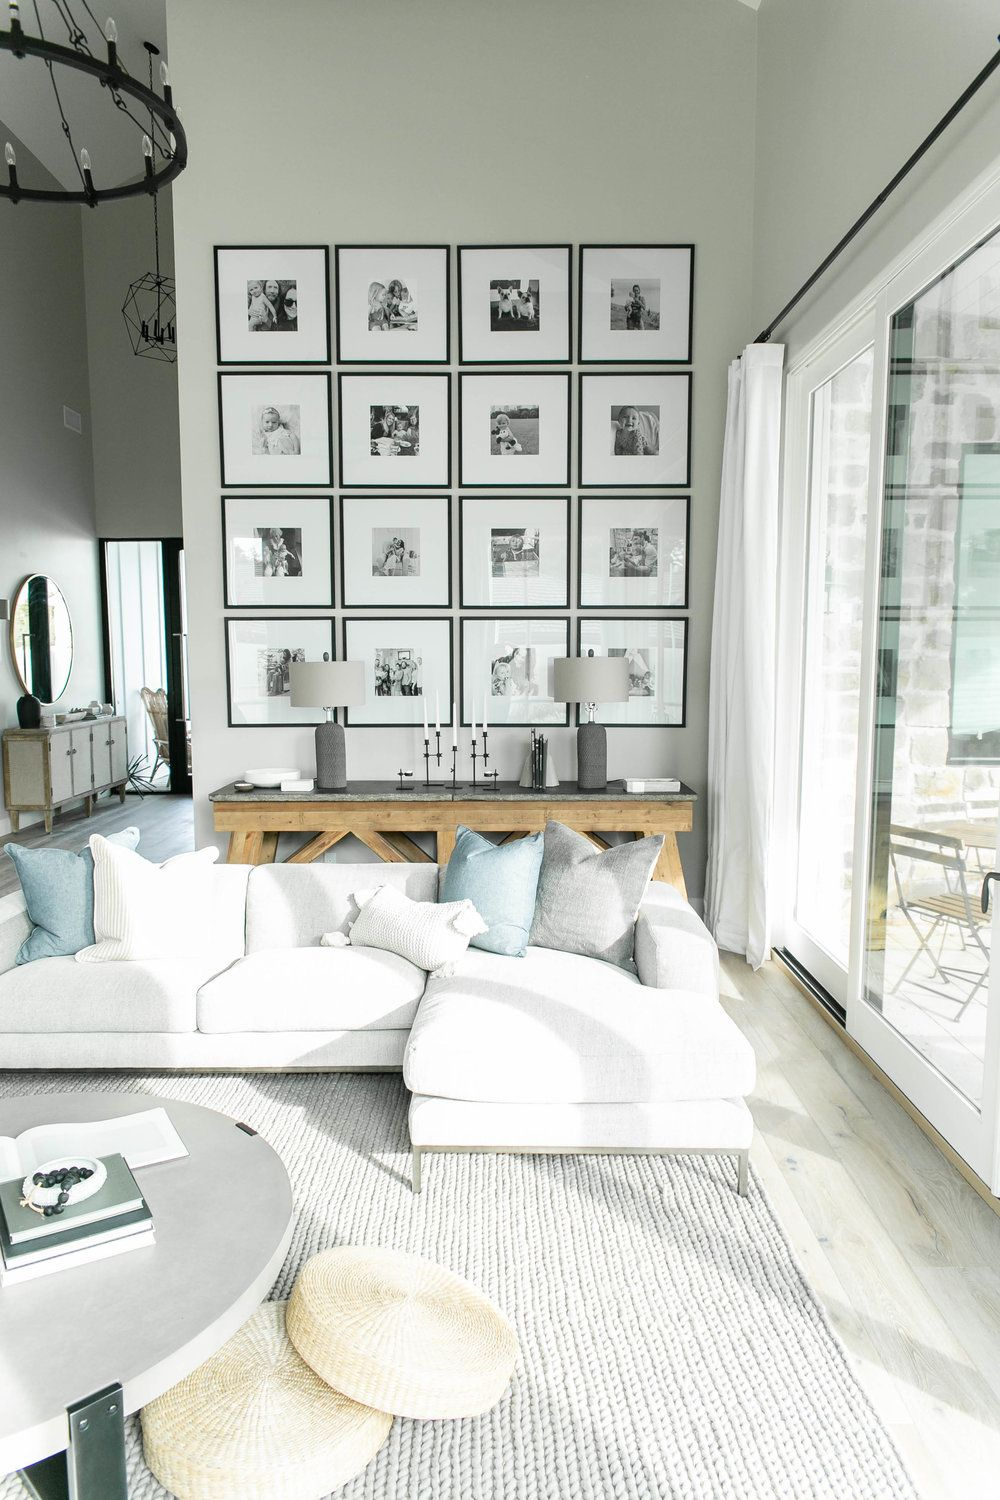 BrieBellaProject   Home, Home decor inspiration, Home living room